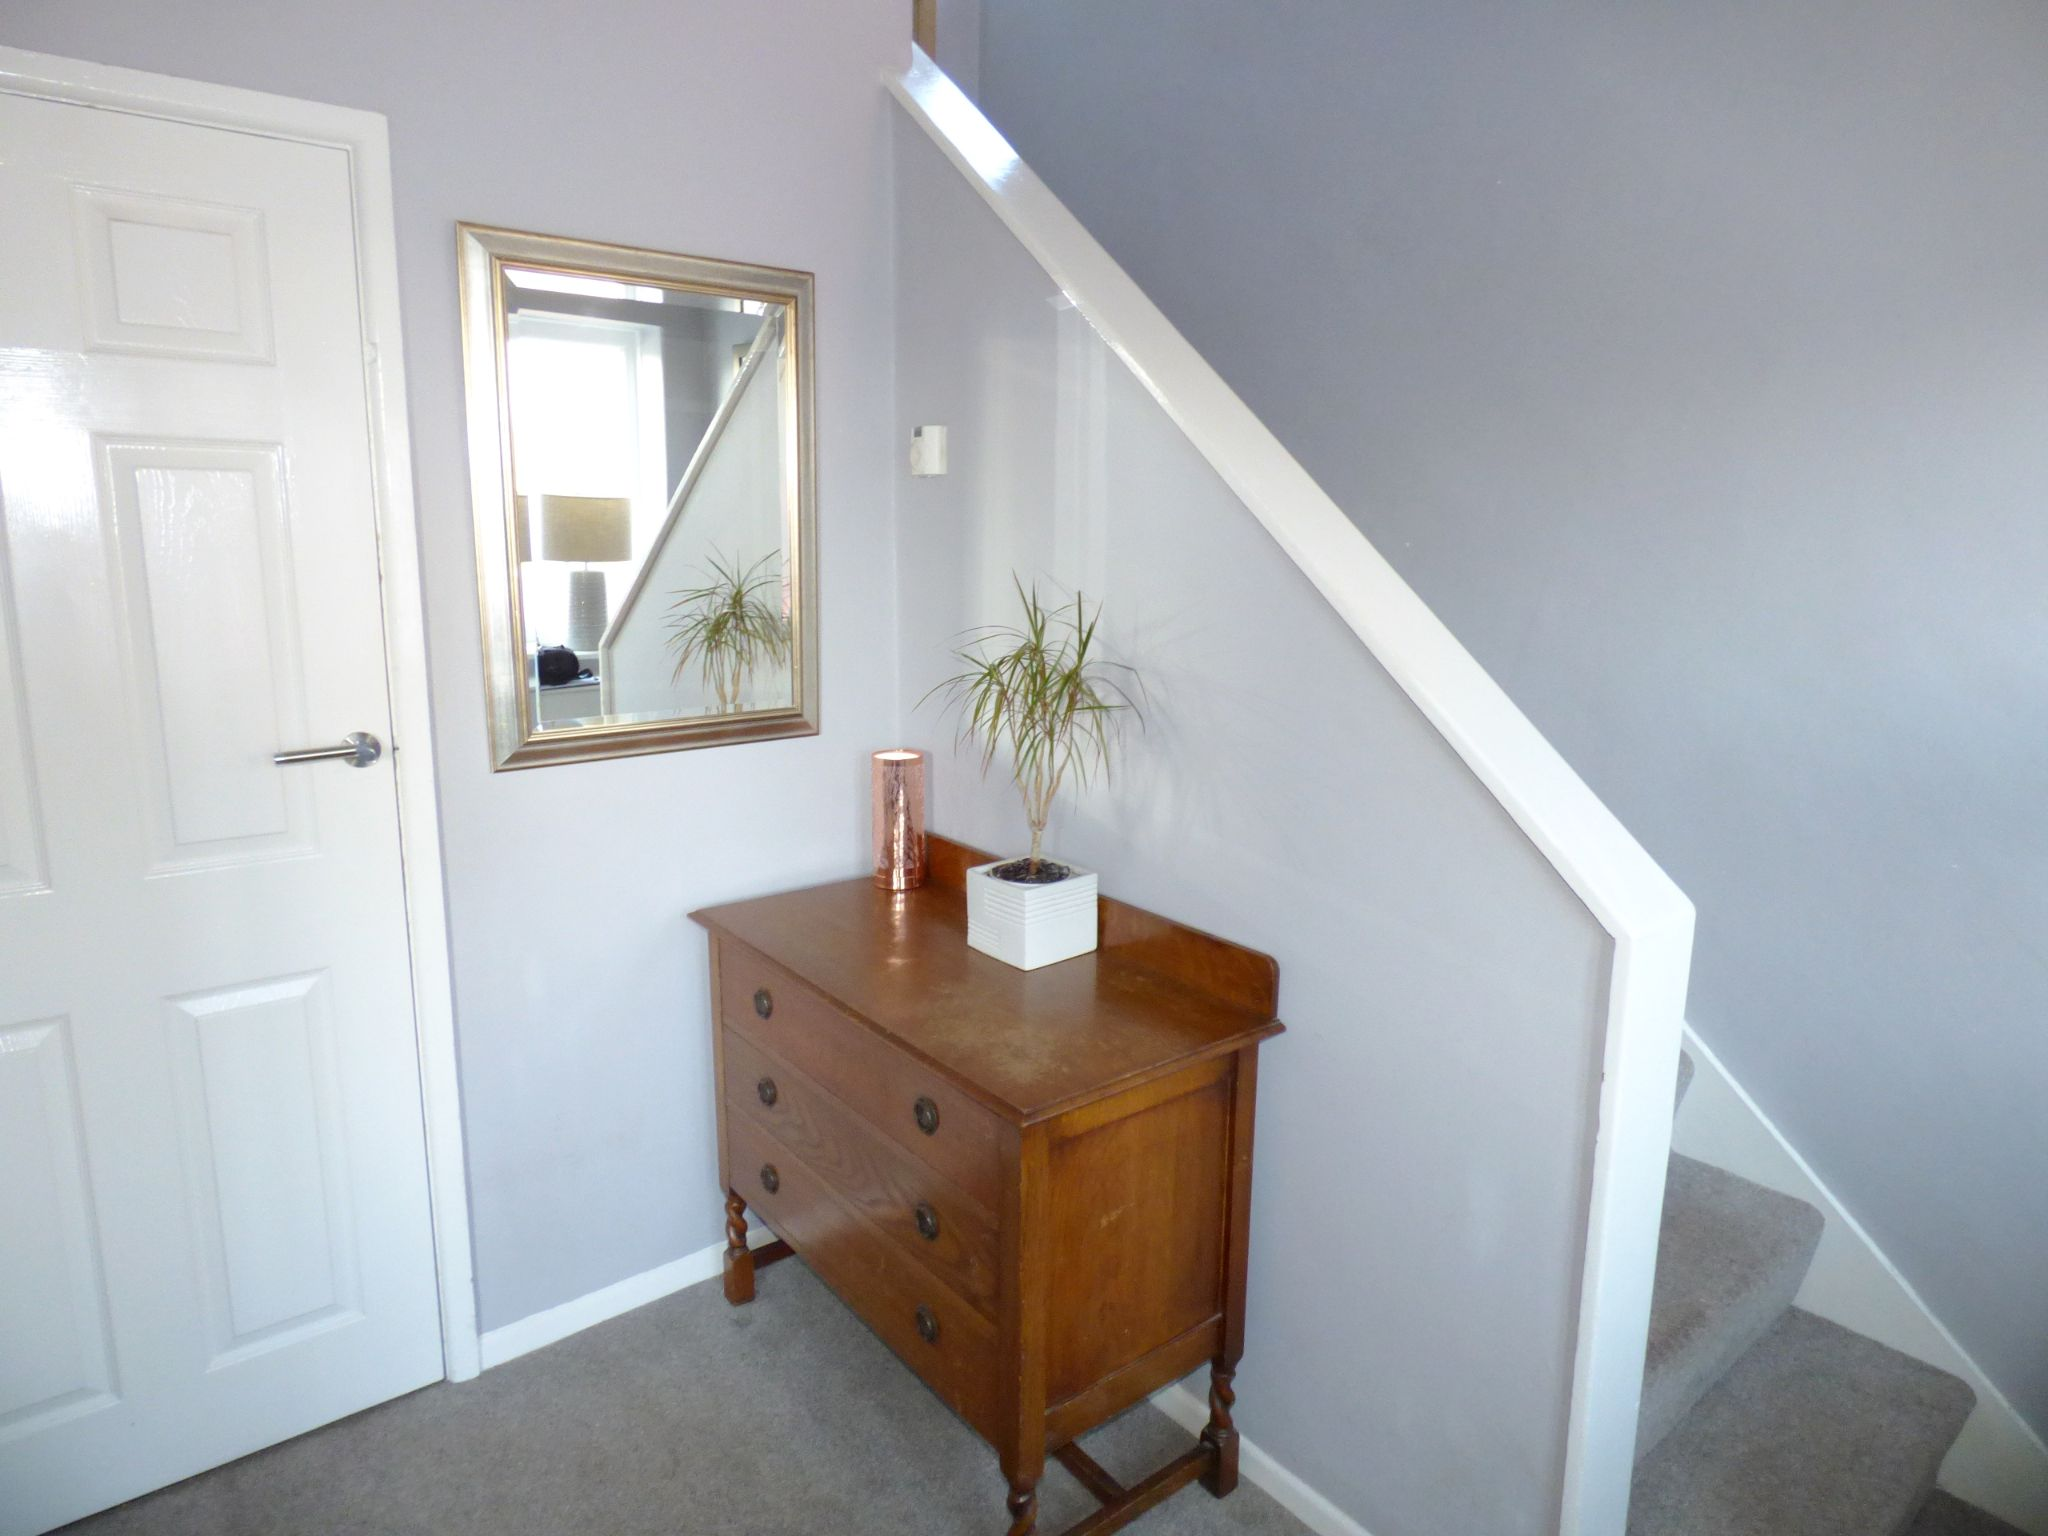 3 Bedroom Semi-detached House For Sale - Hall